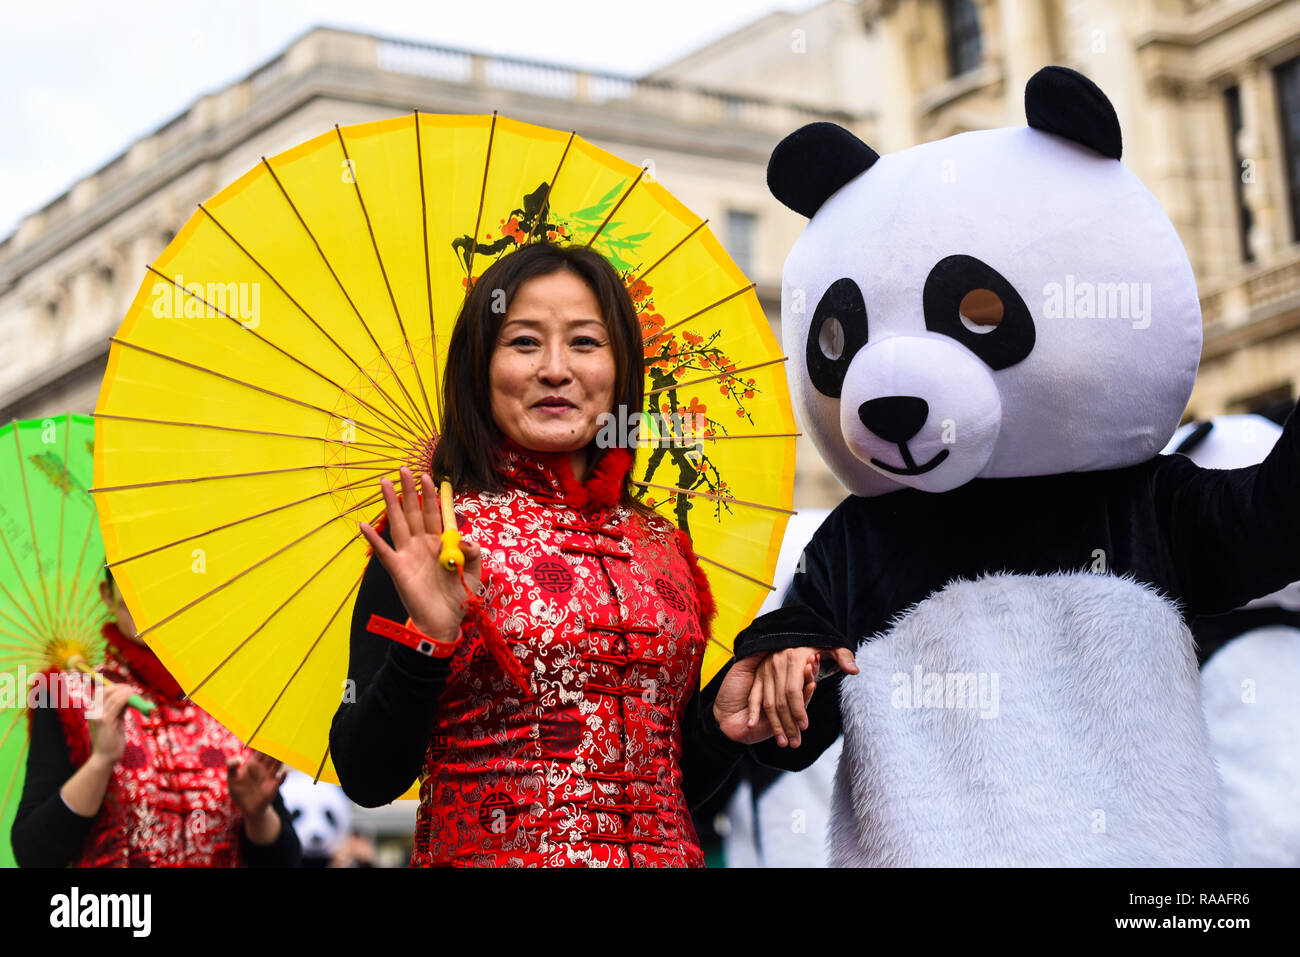 London Chinese Chinatown Association, UK, at London's New Year's Day Parade, UK. Female Chinese and panda costume - Stock Image